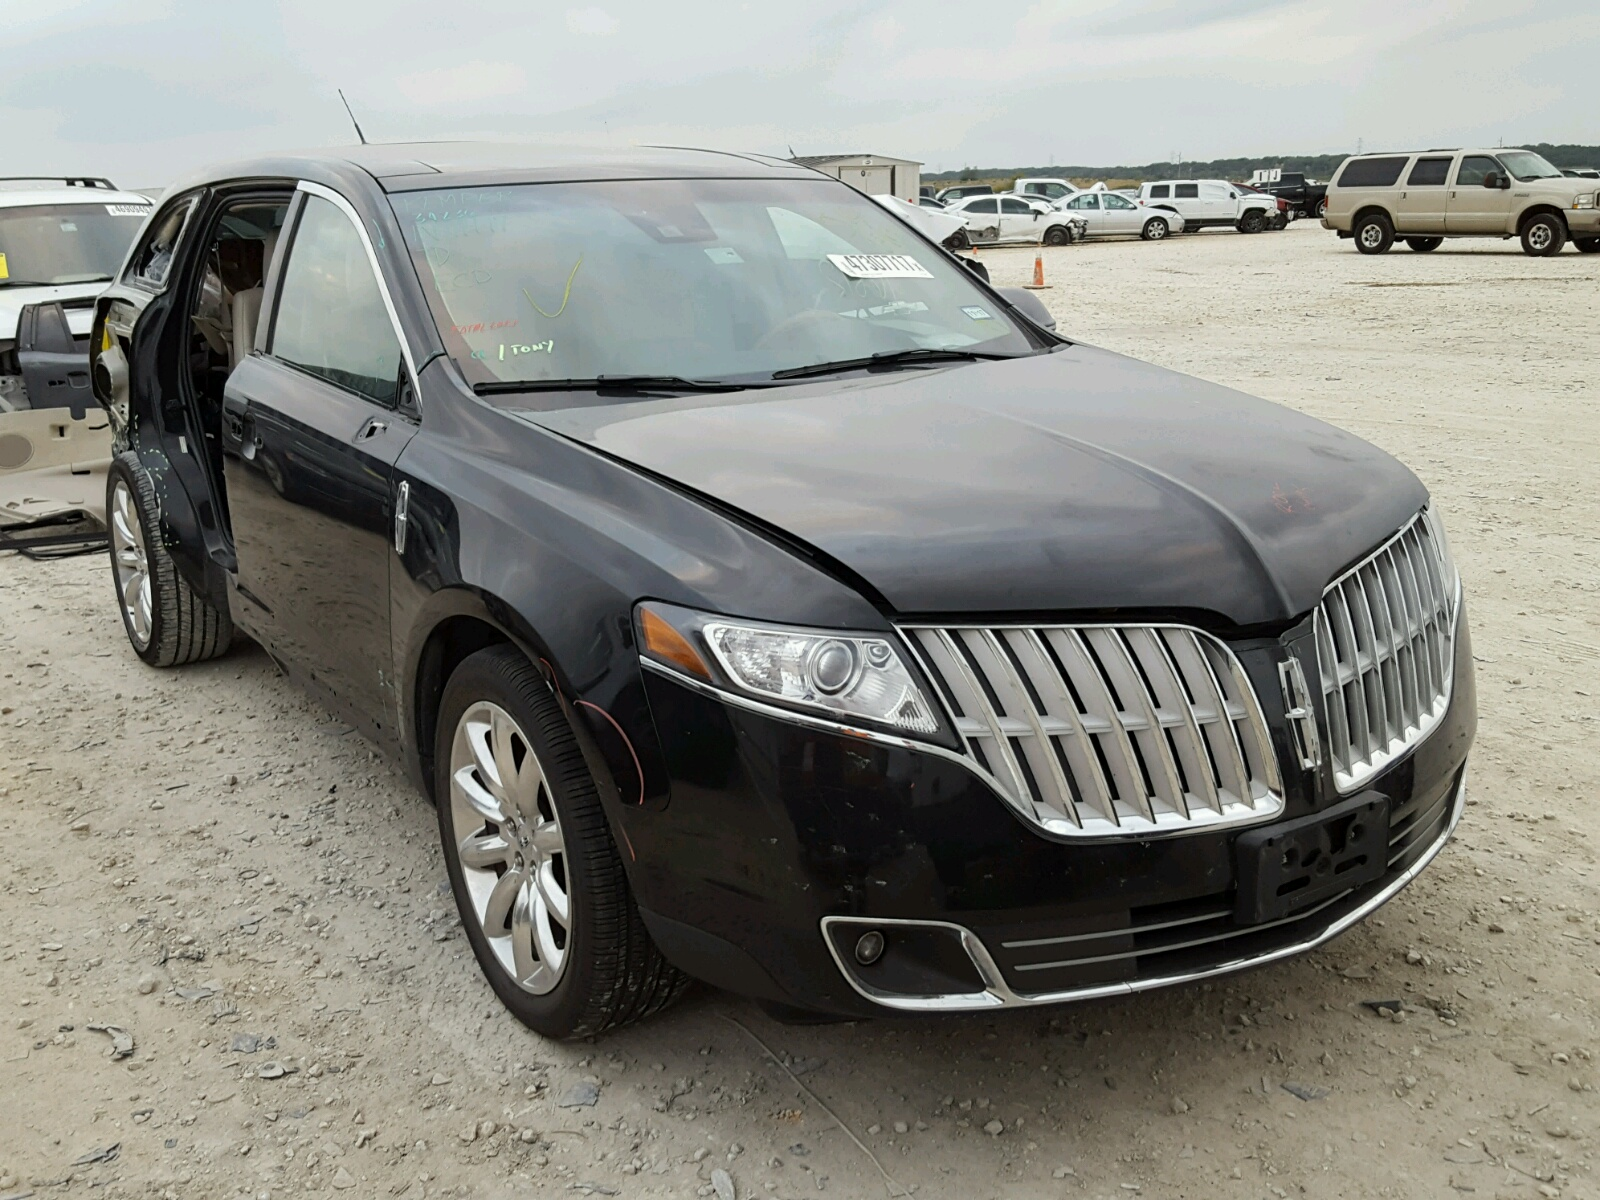 cape used mkt base mo in lincoln bud mkx dexter girardeau